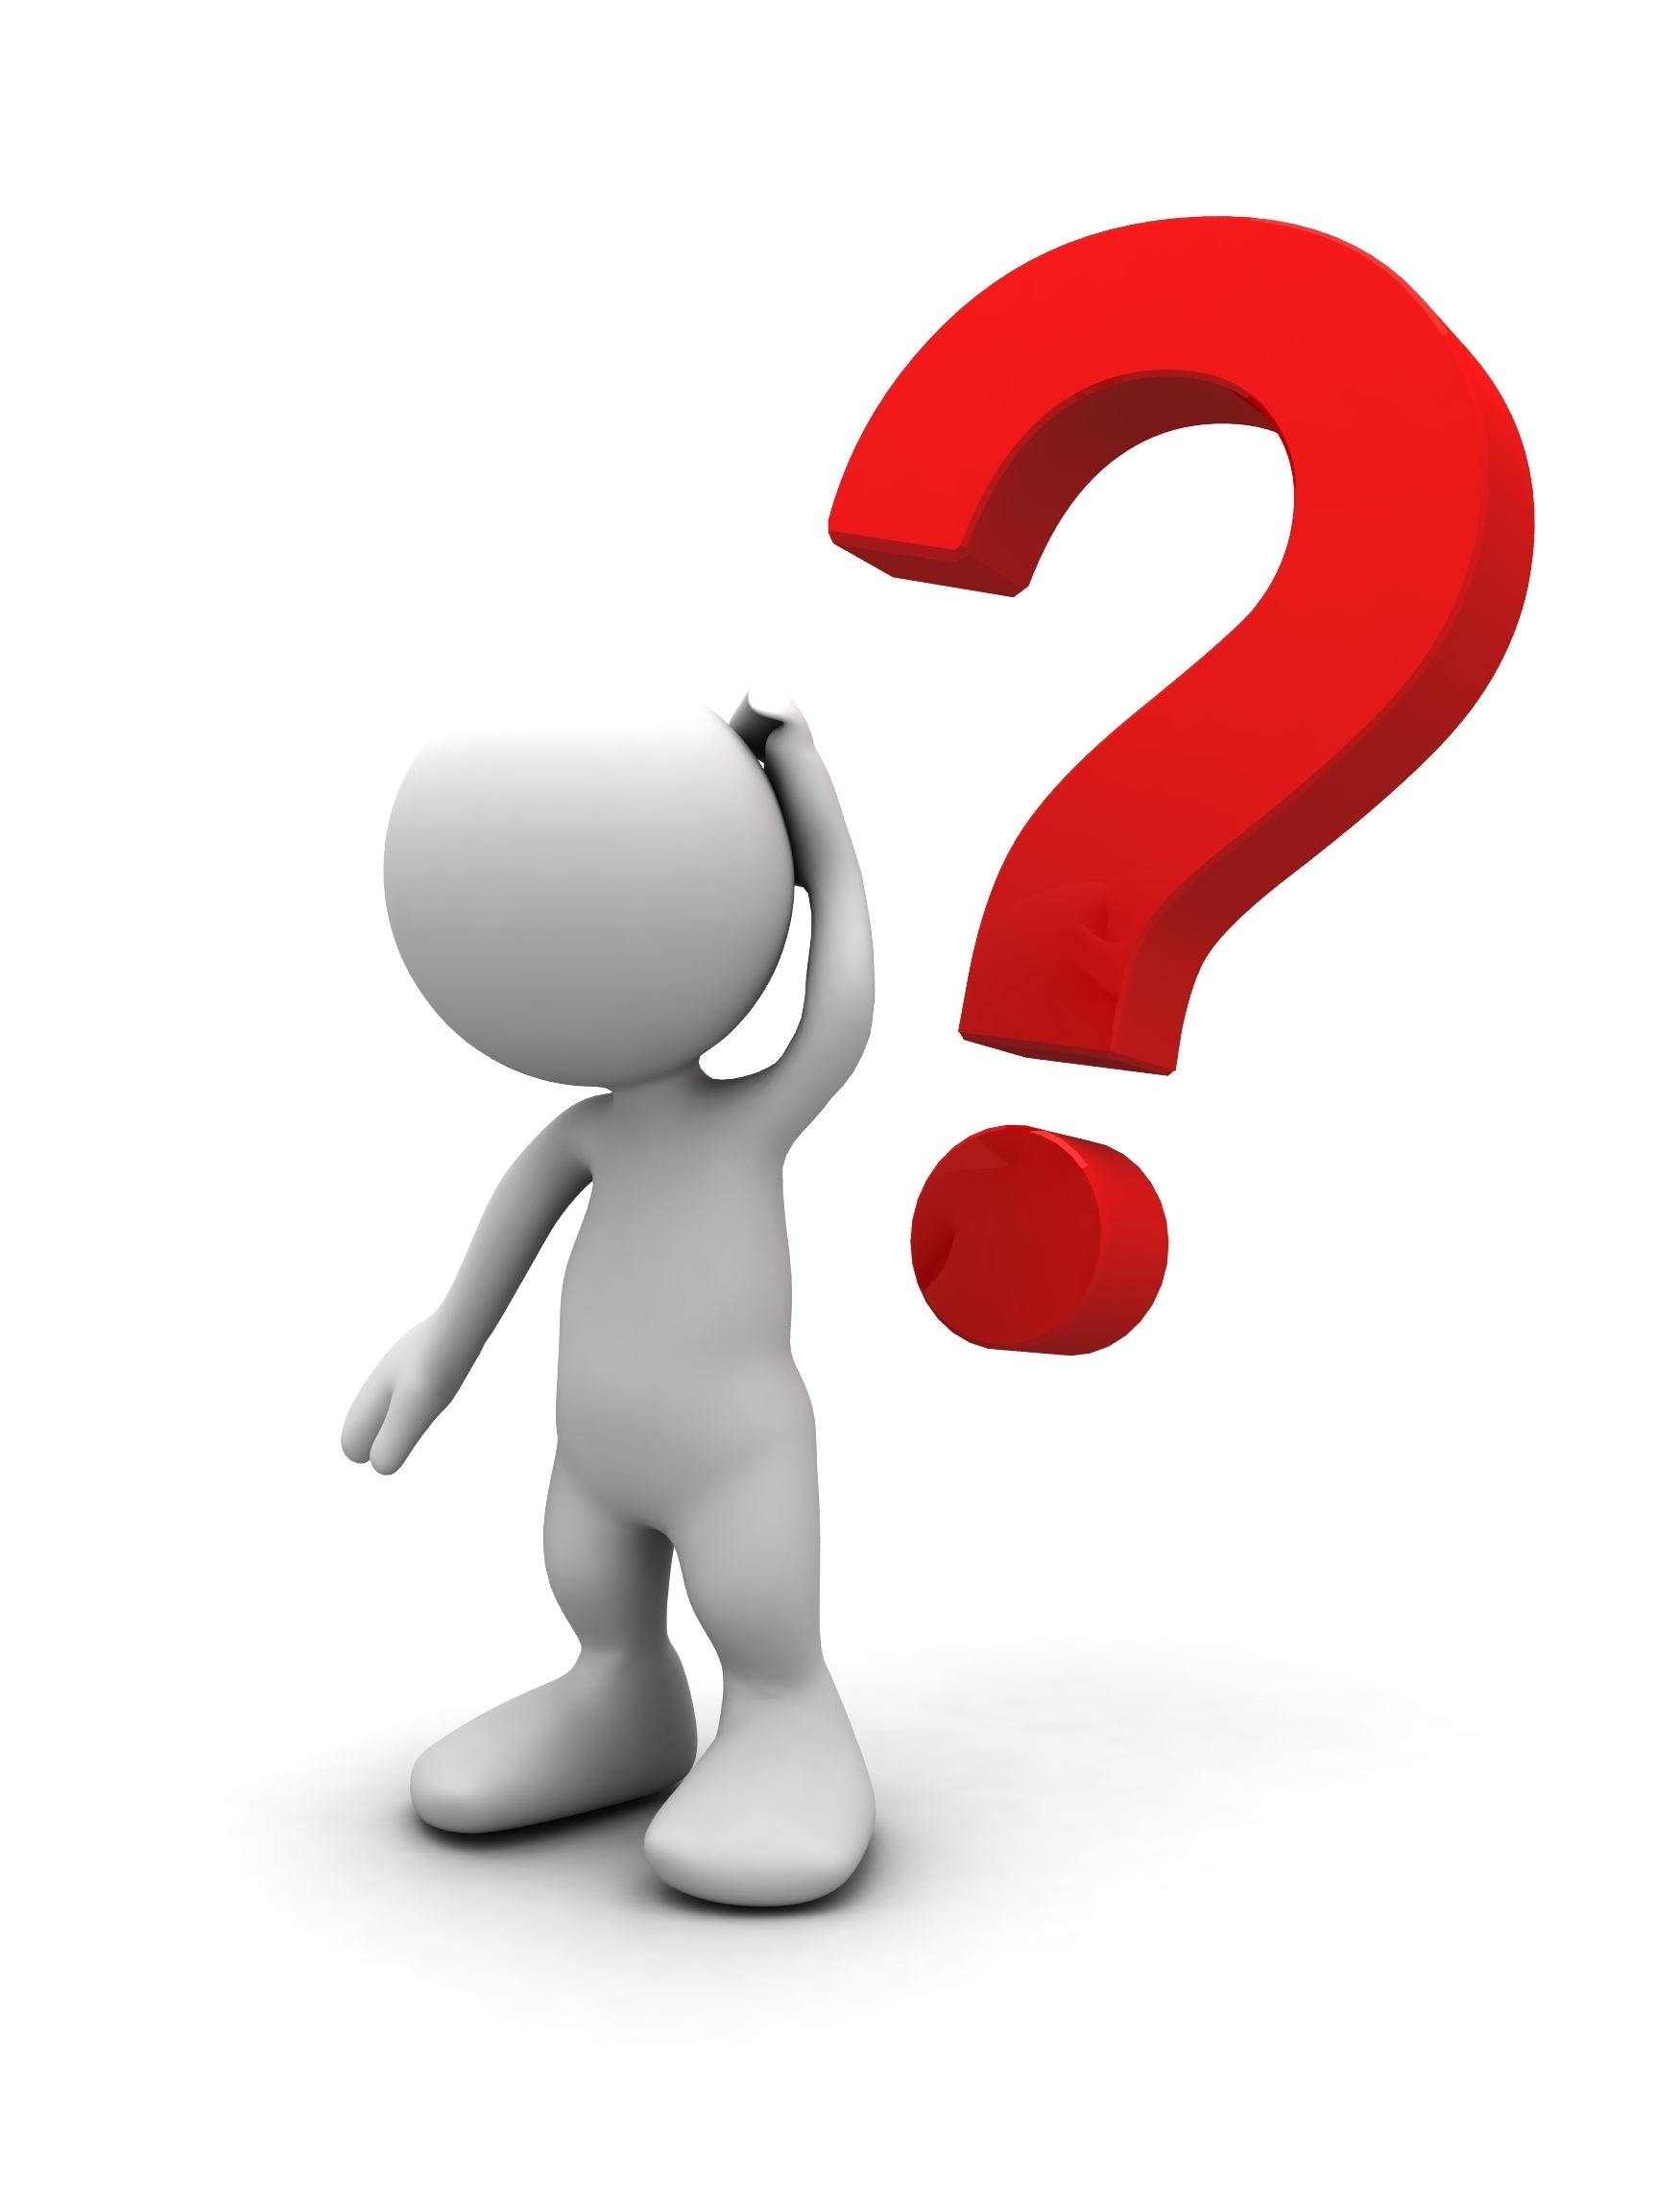 820e9a67b2bbaa37ba296be44dbfe901_question-mark-images-clipart-head-with-question-mark-free-clipart_1750-2300.jpeg